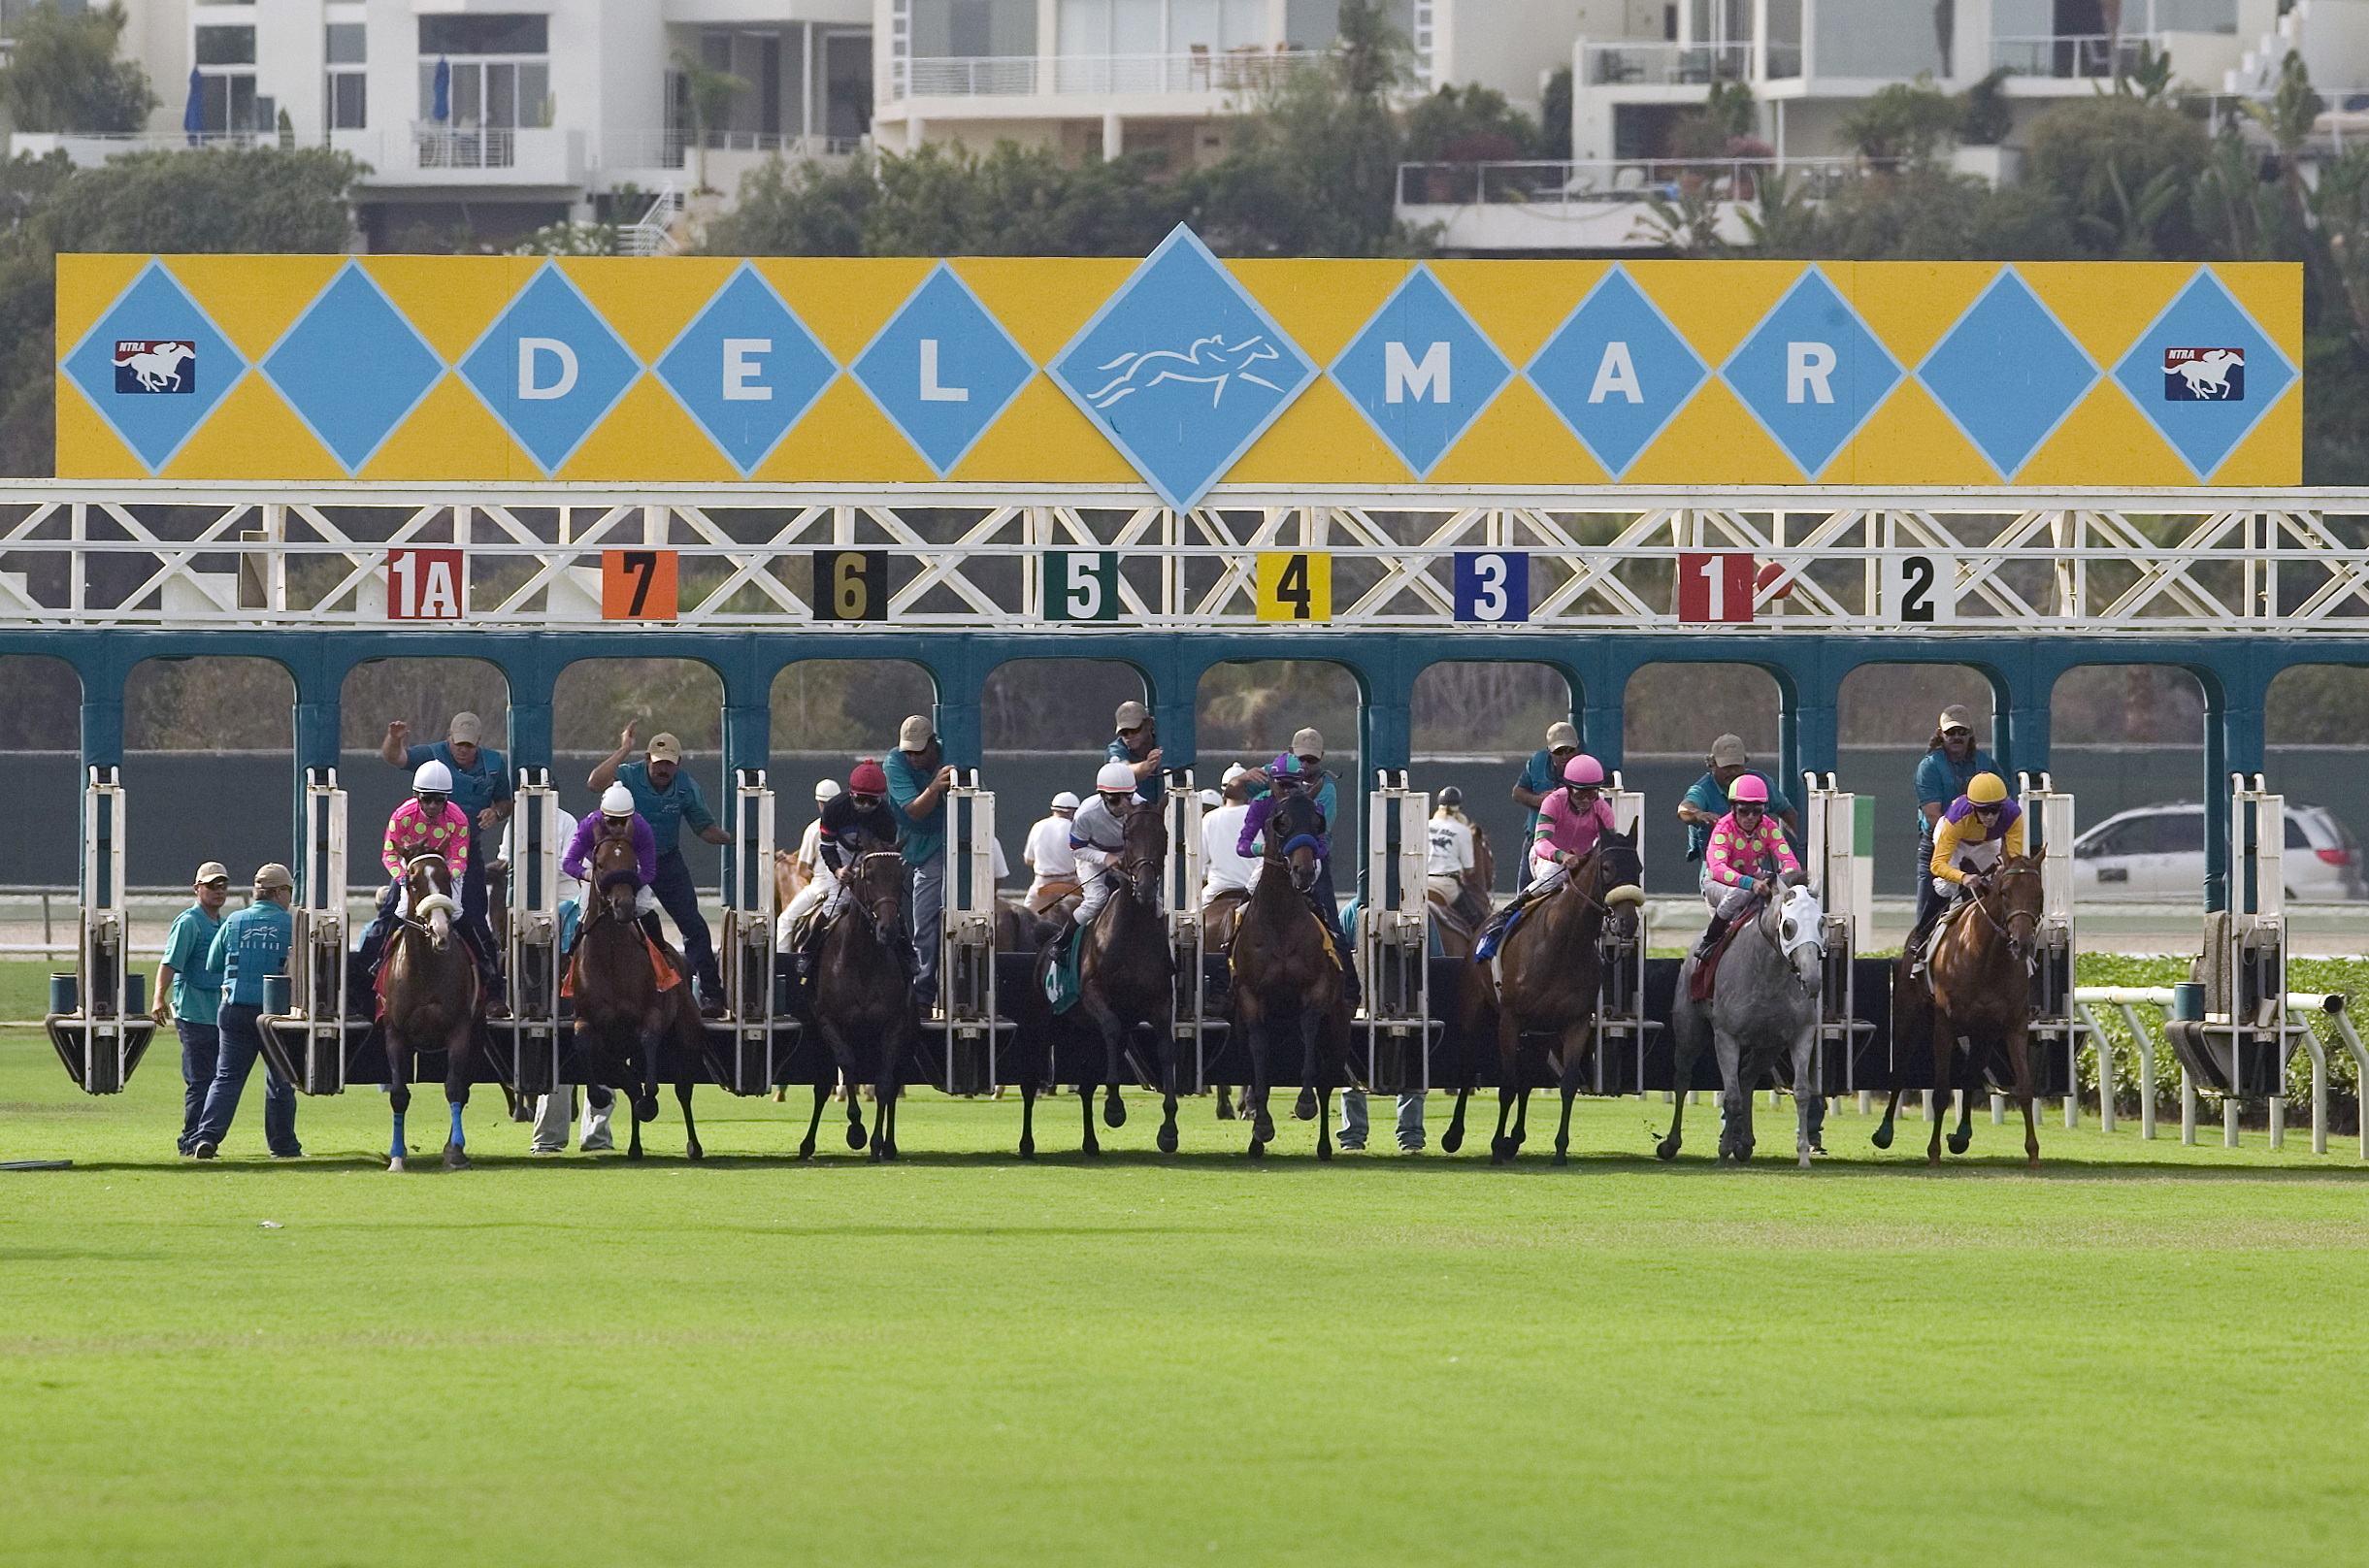 Del-Mar-Race-Horses-at-Starting-Gate-Courtesy-SanDiego.org_